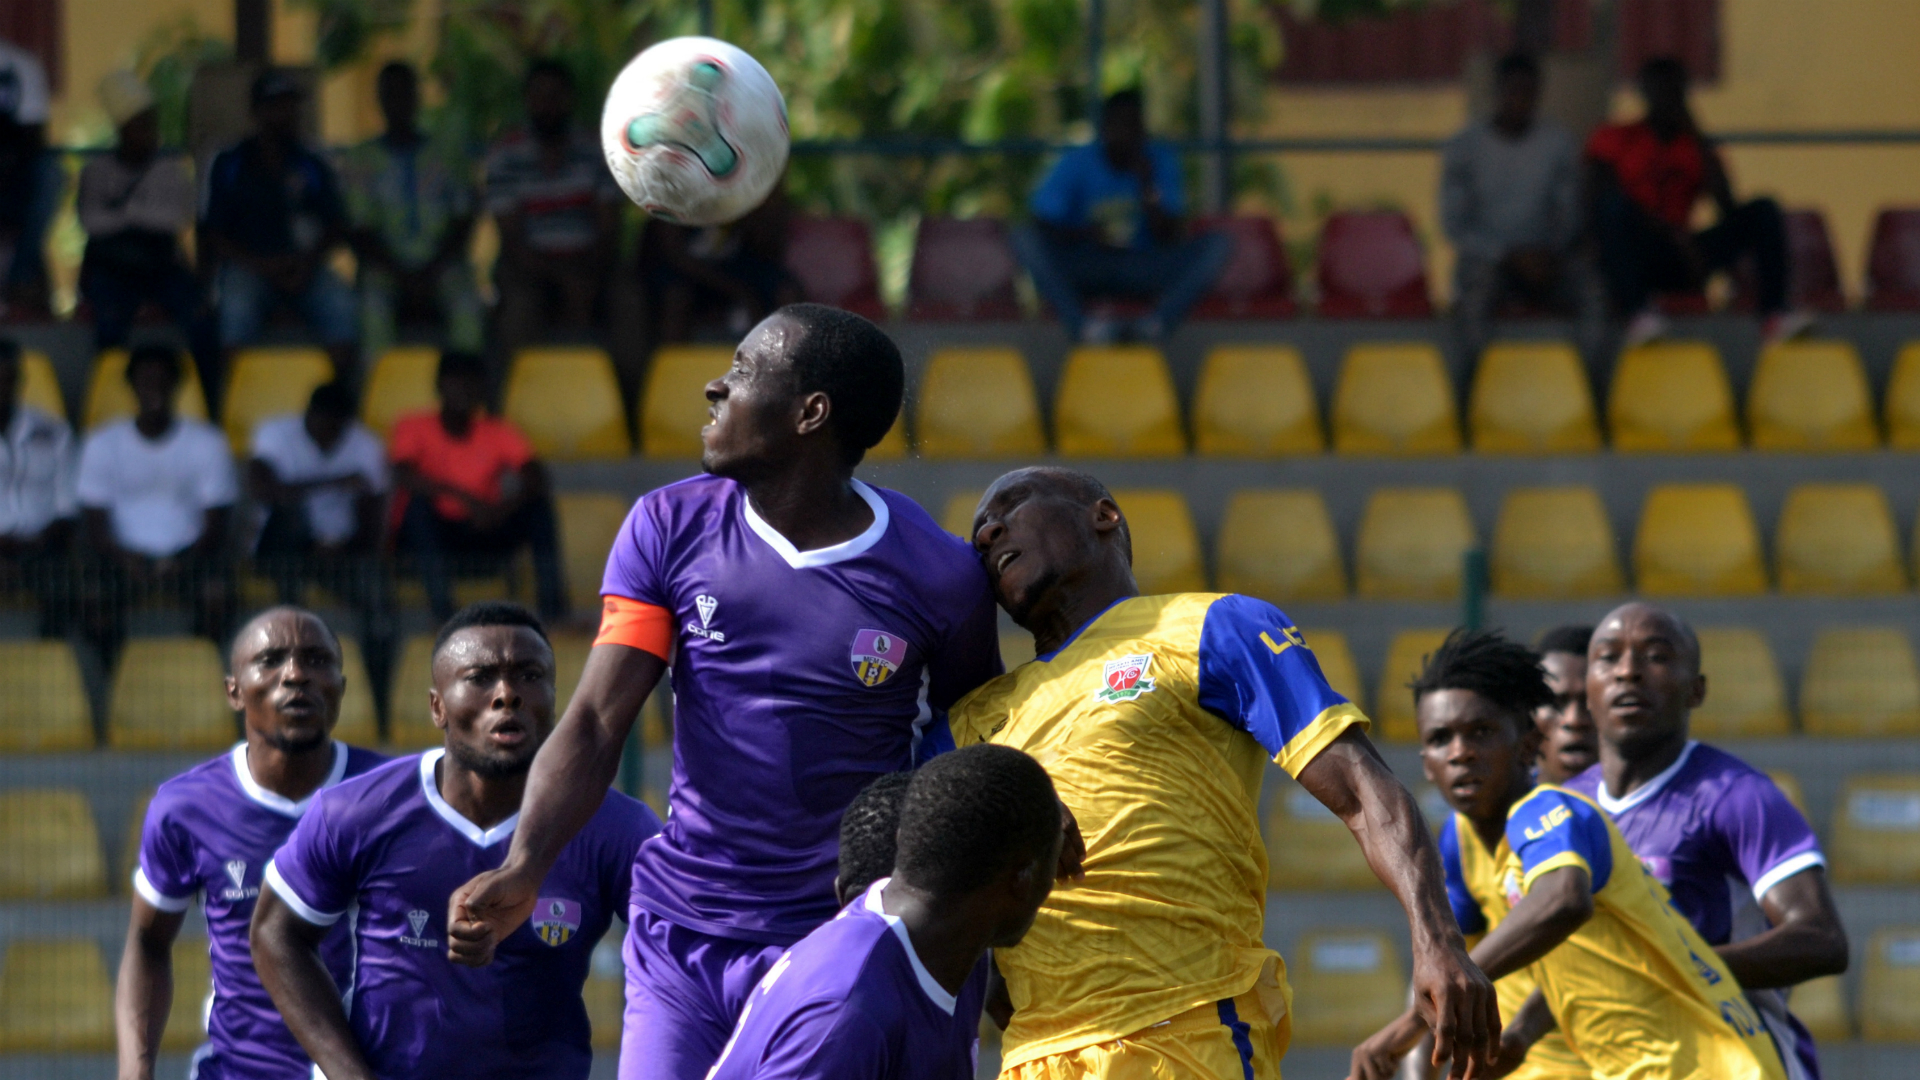 NPFL Transfers: MFM confirm captain Austin Opara is joining Enyimba